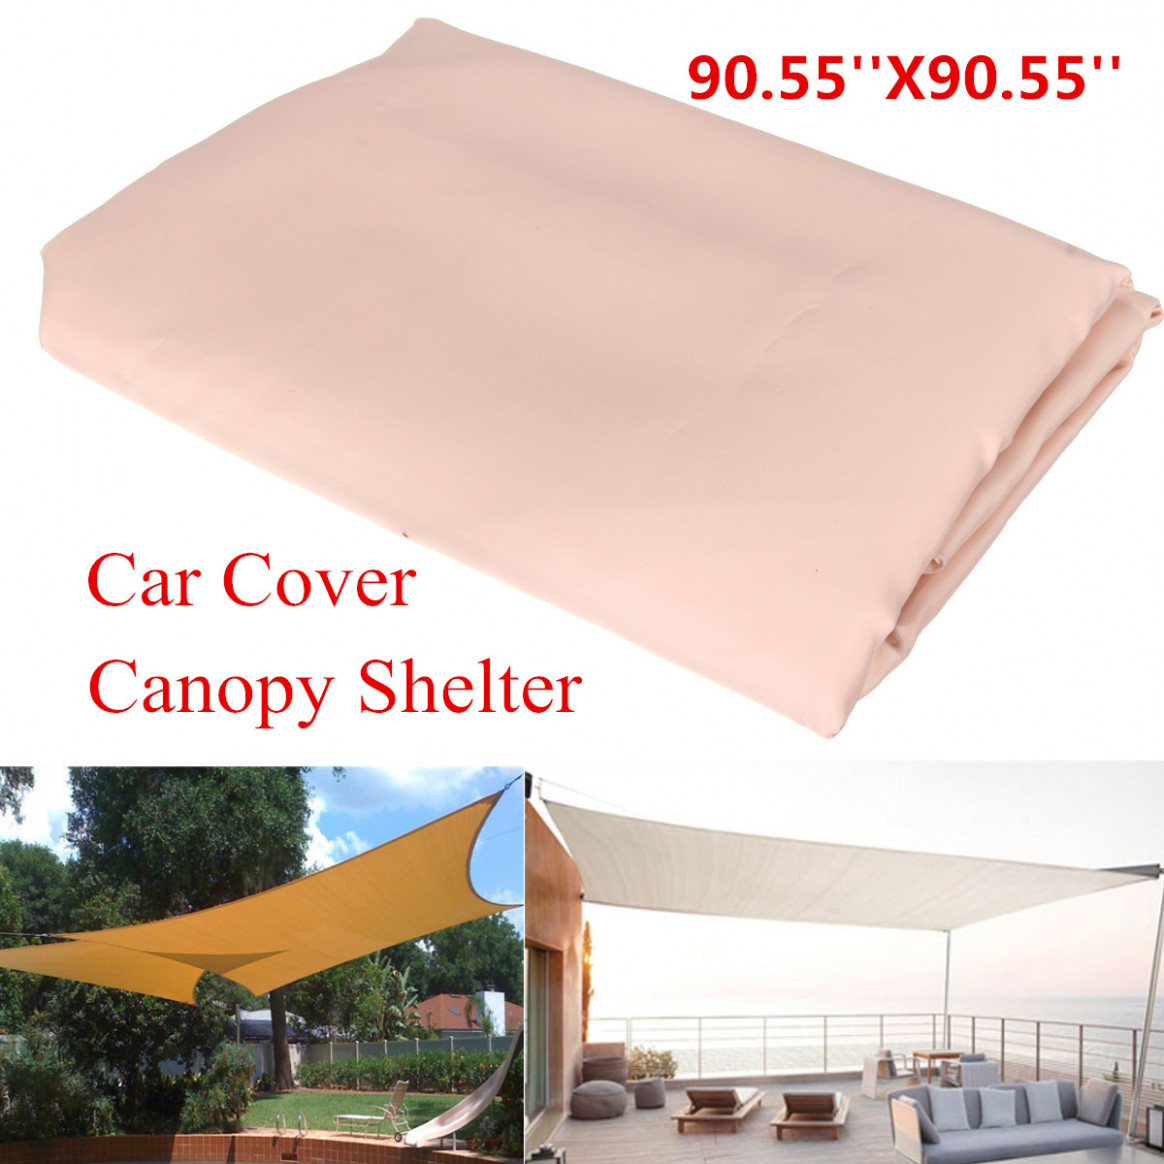 12x12m Patio Outdoor Shade Sail Garden Cover Mesh Net Polyester Car Window Awning Carport Canopy Used Carport Canopy